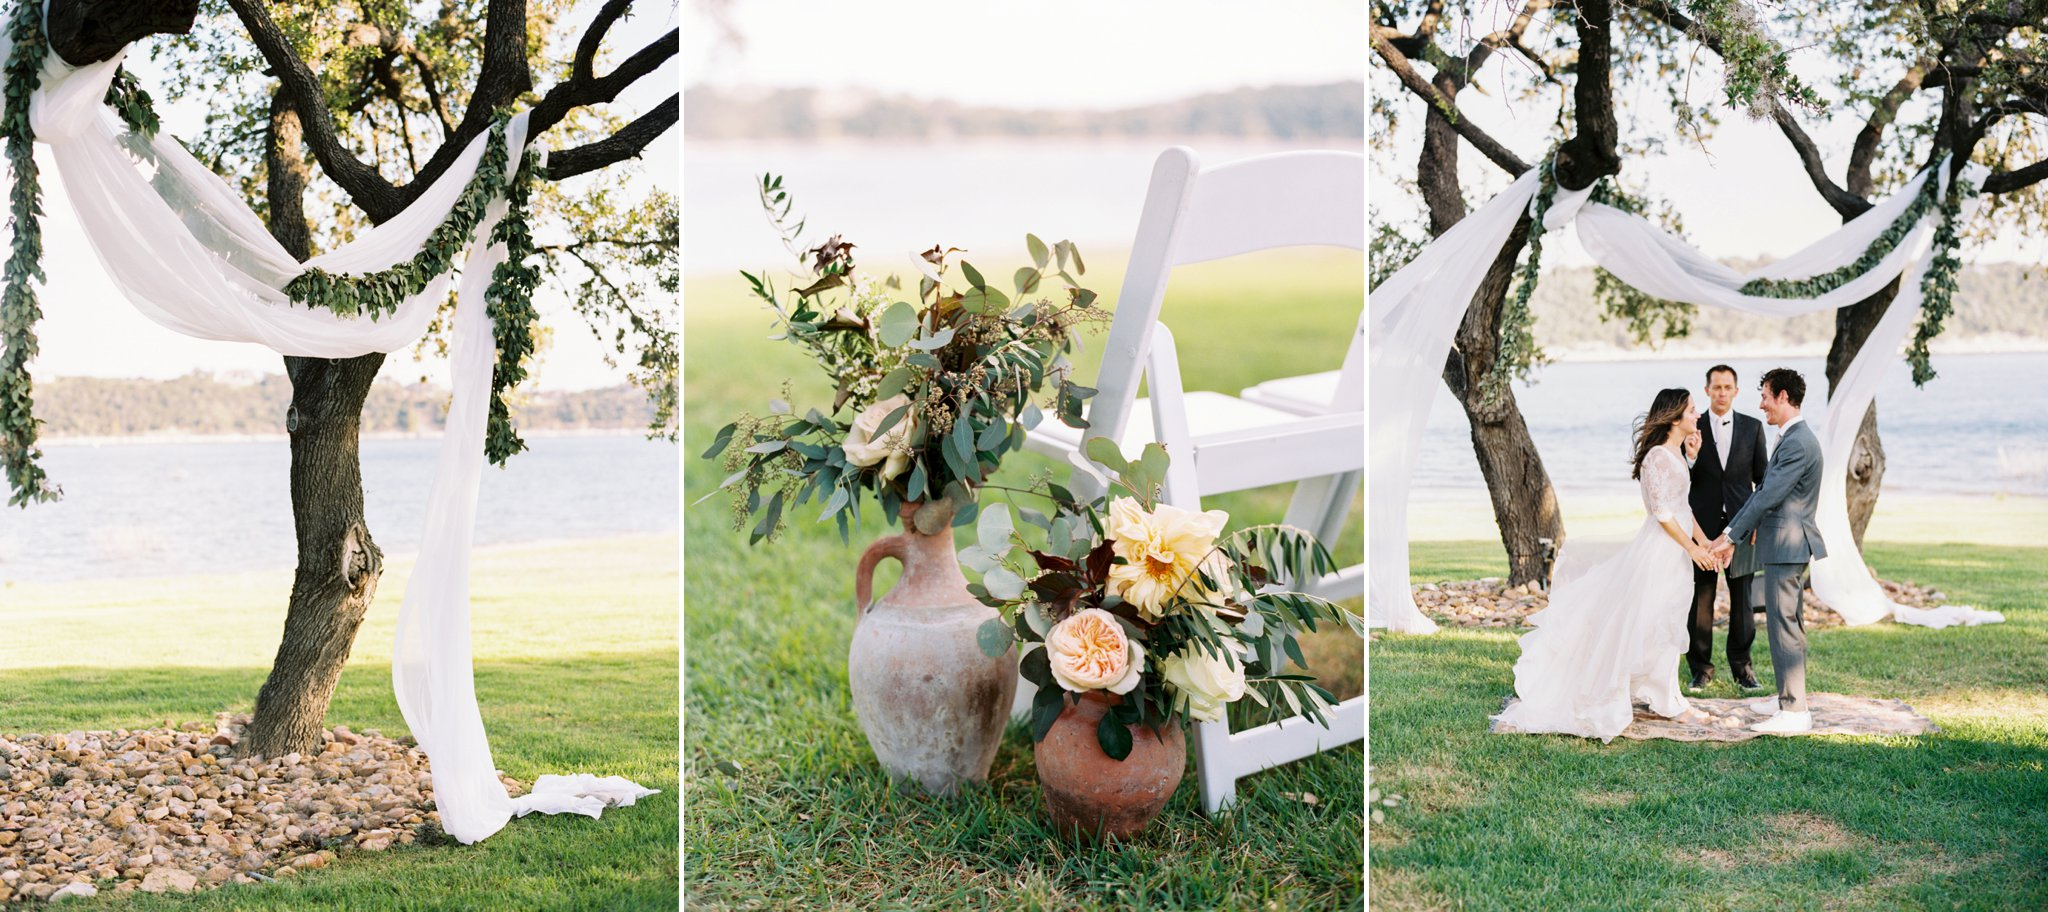 Kalie and Steven had 'minimal romantic' in mind as they designed their lakeside wedding. It felt so fitting to have drapery and greenery blowing in the wind - also, those terra cotta pots were perfect You can see more of this wedding  here .. Florals:  Earl Grey Floral  | Pottery:  Birch and Brass Rentals